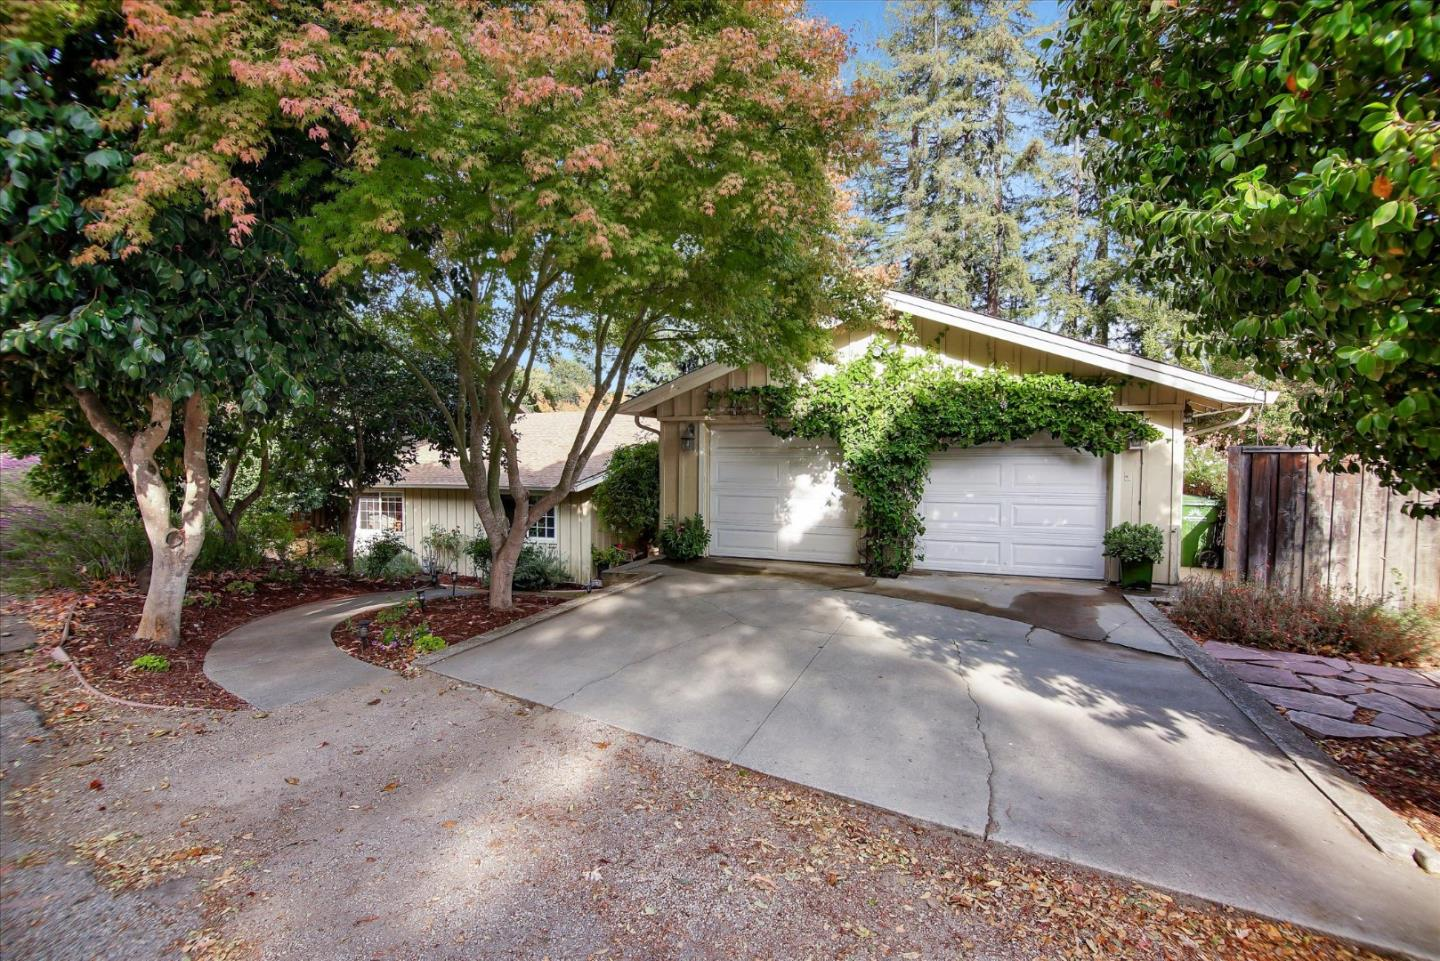 This Beautiful home sits on a large landscaped lot in a great Scotts Valley neighborhood. At almost 2,100 sq.ft. this property is close to the best schools, restaurants, shopping and the commute. The main level of the home boasts a remodeled kitchen with breakfast nook, a large family room with wood burning stove, 3 bedrooms and an office/den. Upstairs you will find a bonus bedroom/game room that isn't included in the square footage. The family room leads out to an entertainers backyard. Custom landscaping, redwood deck, patio with firepit and large side yard for storage are just the beginning.  This property also features a finished basement for extra storage or your wine collection.